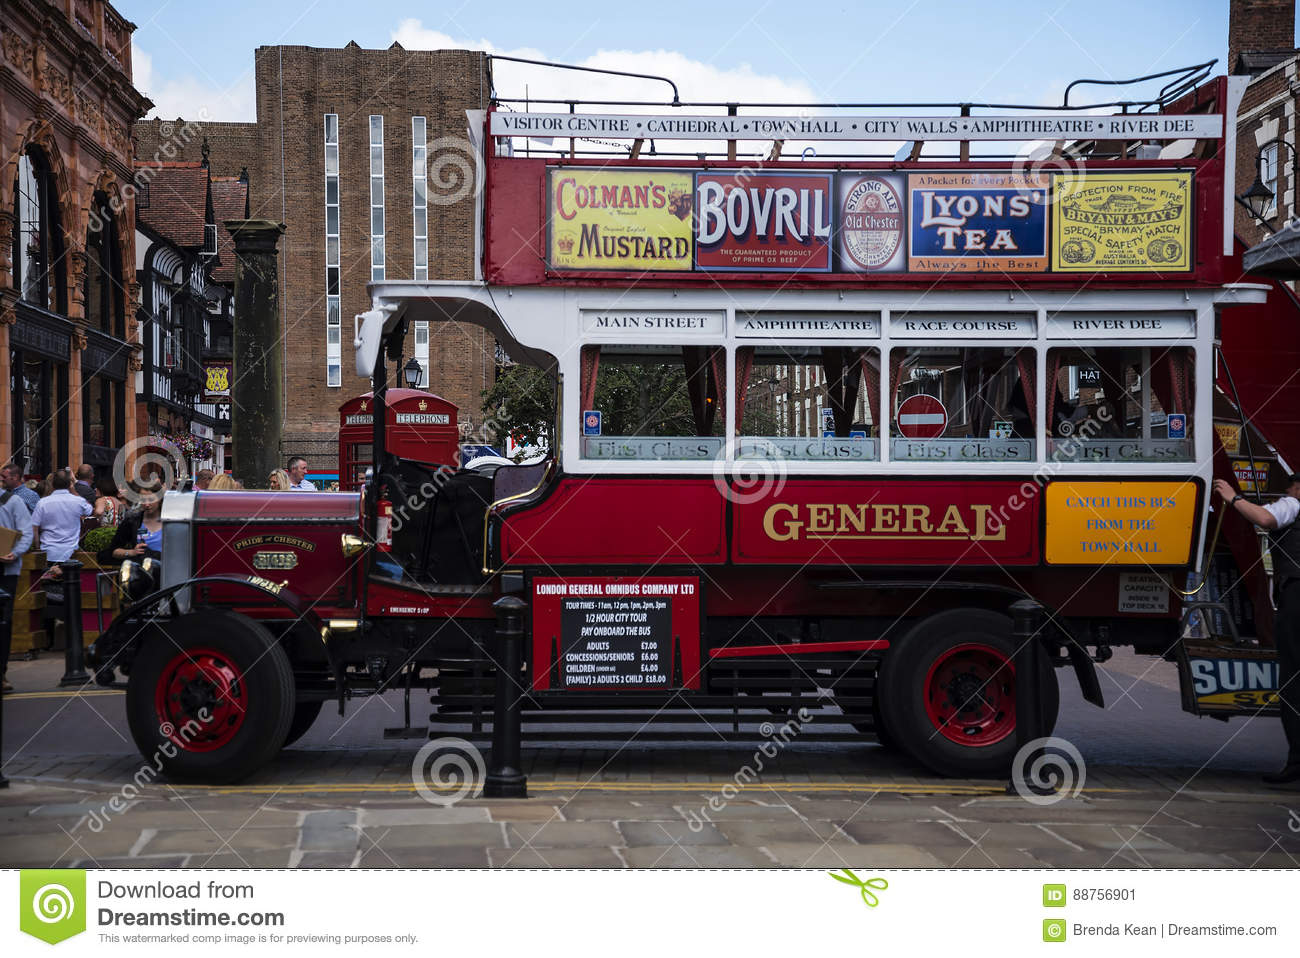 Tour Guide Omnibus in Chester the county city of Cheshire in England